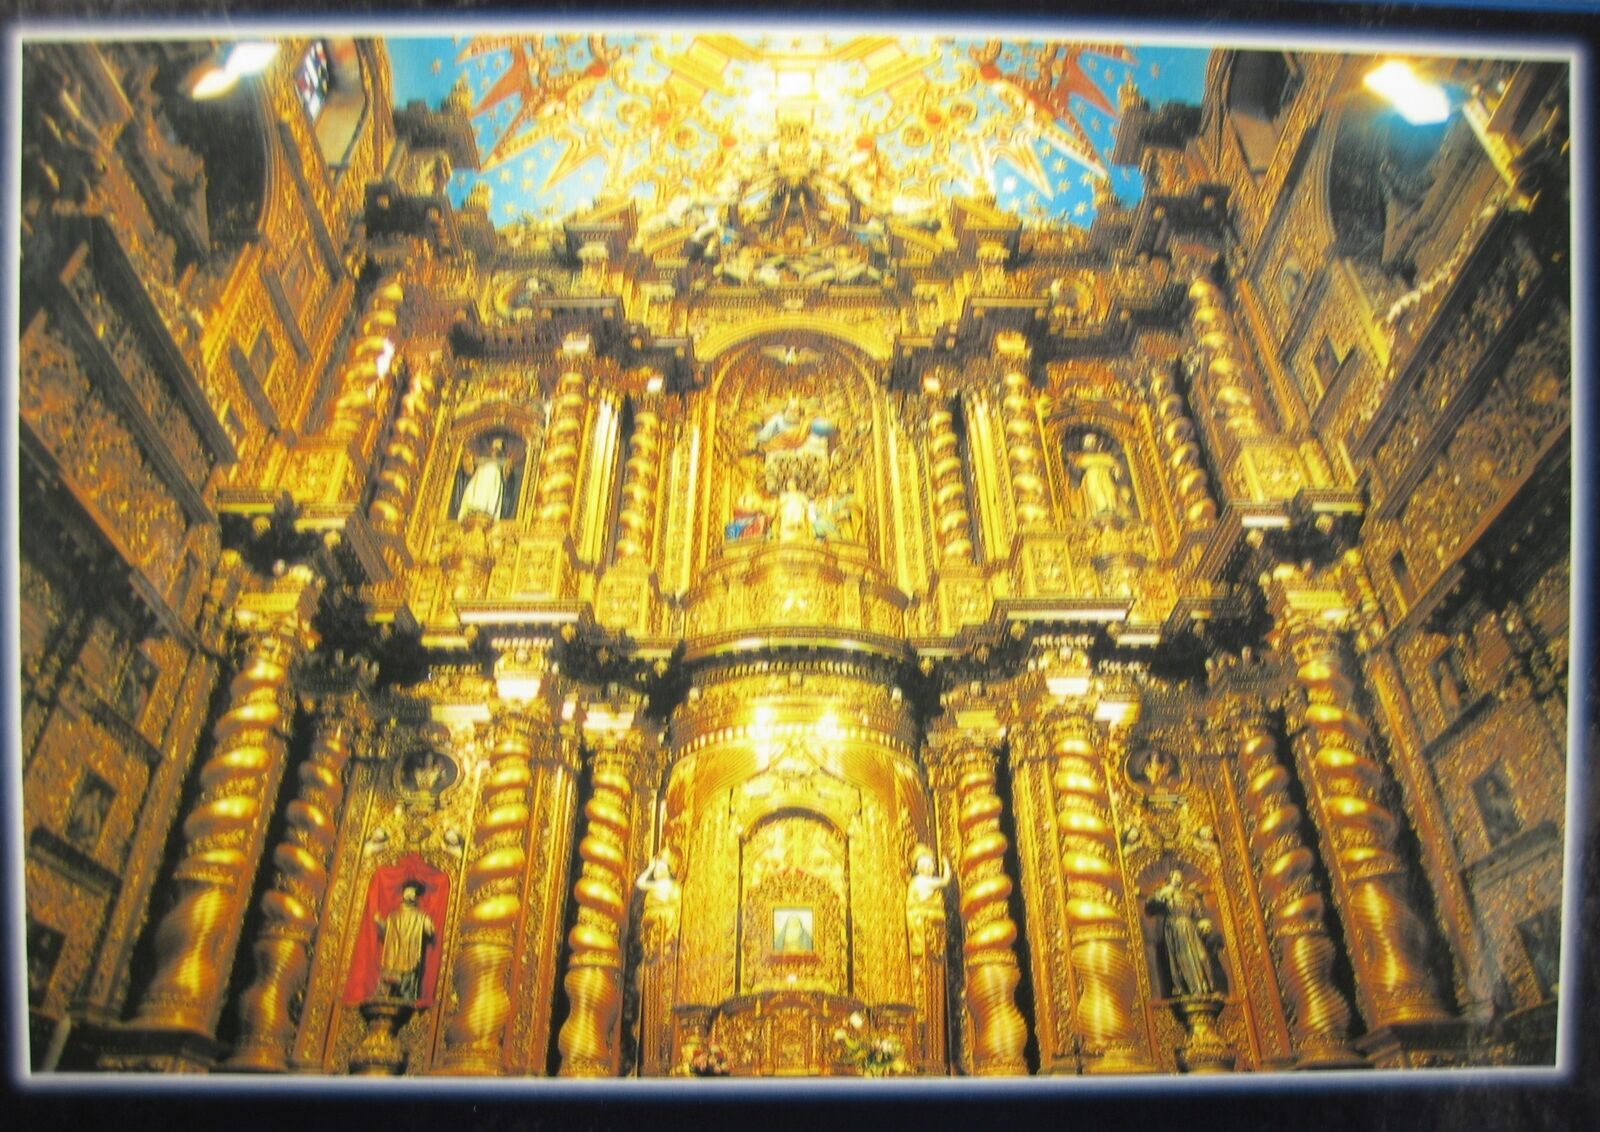 Spectacular Interior Jigsaw 750 Piece Puzzle Wonderful 23x15 World 23x15 Wonderful 0eb0d9